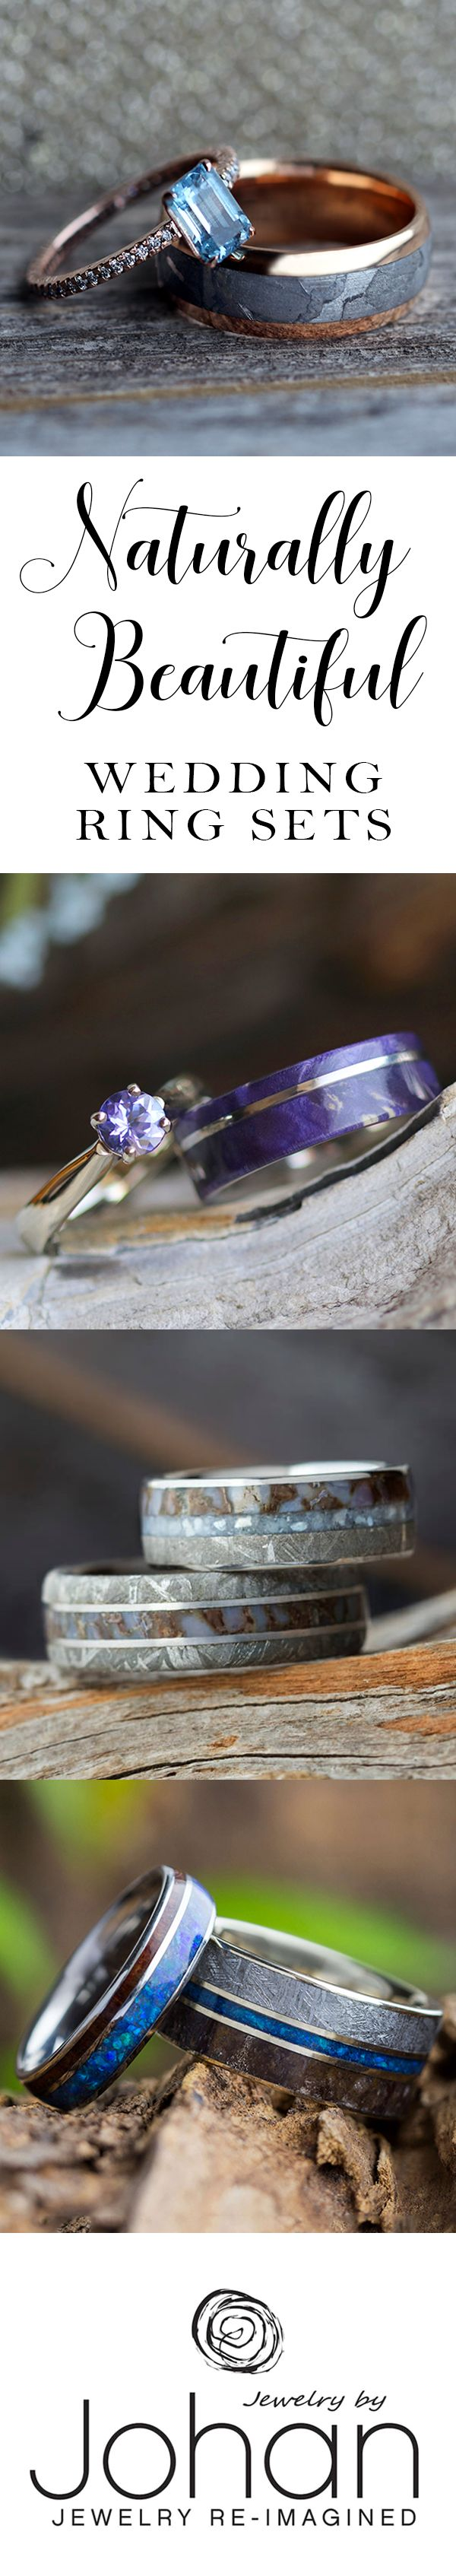 Browse hundreds of pre-designed wedding ring sets or completely customize your own! Choose from unique materials like meteorite, dino bone, exotic woods and deer antler.